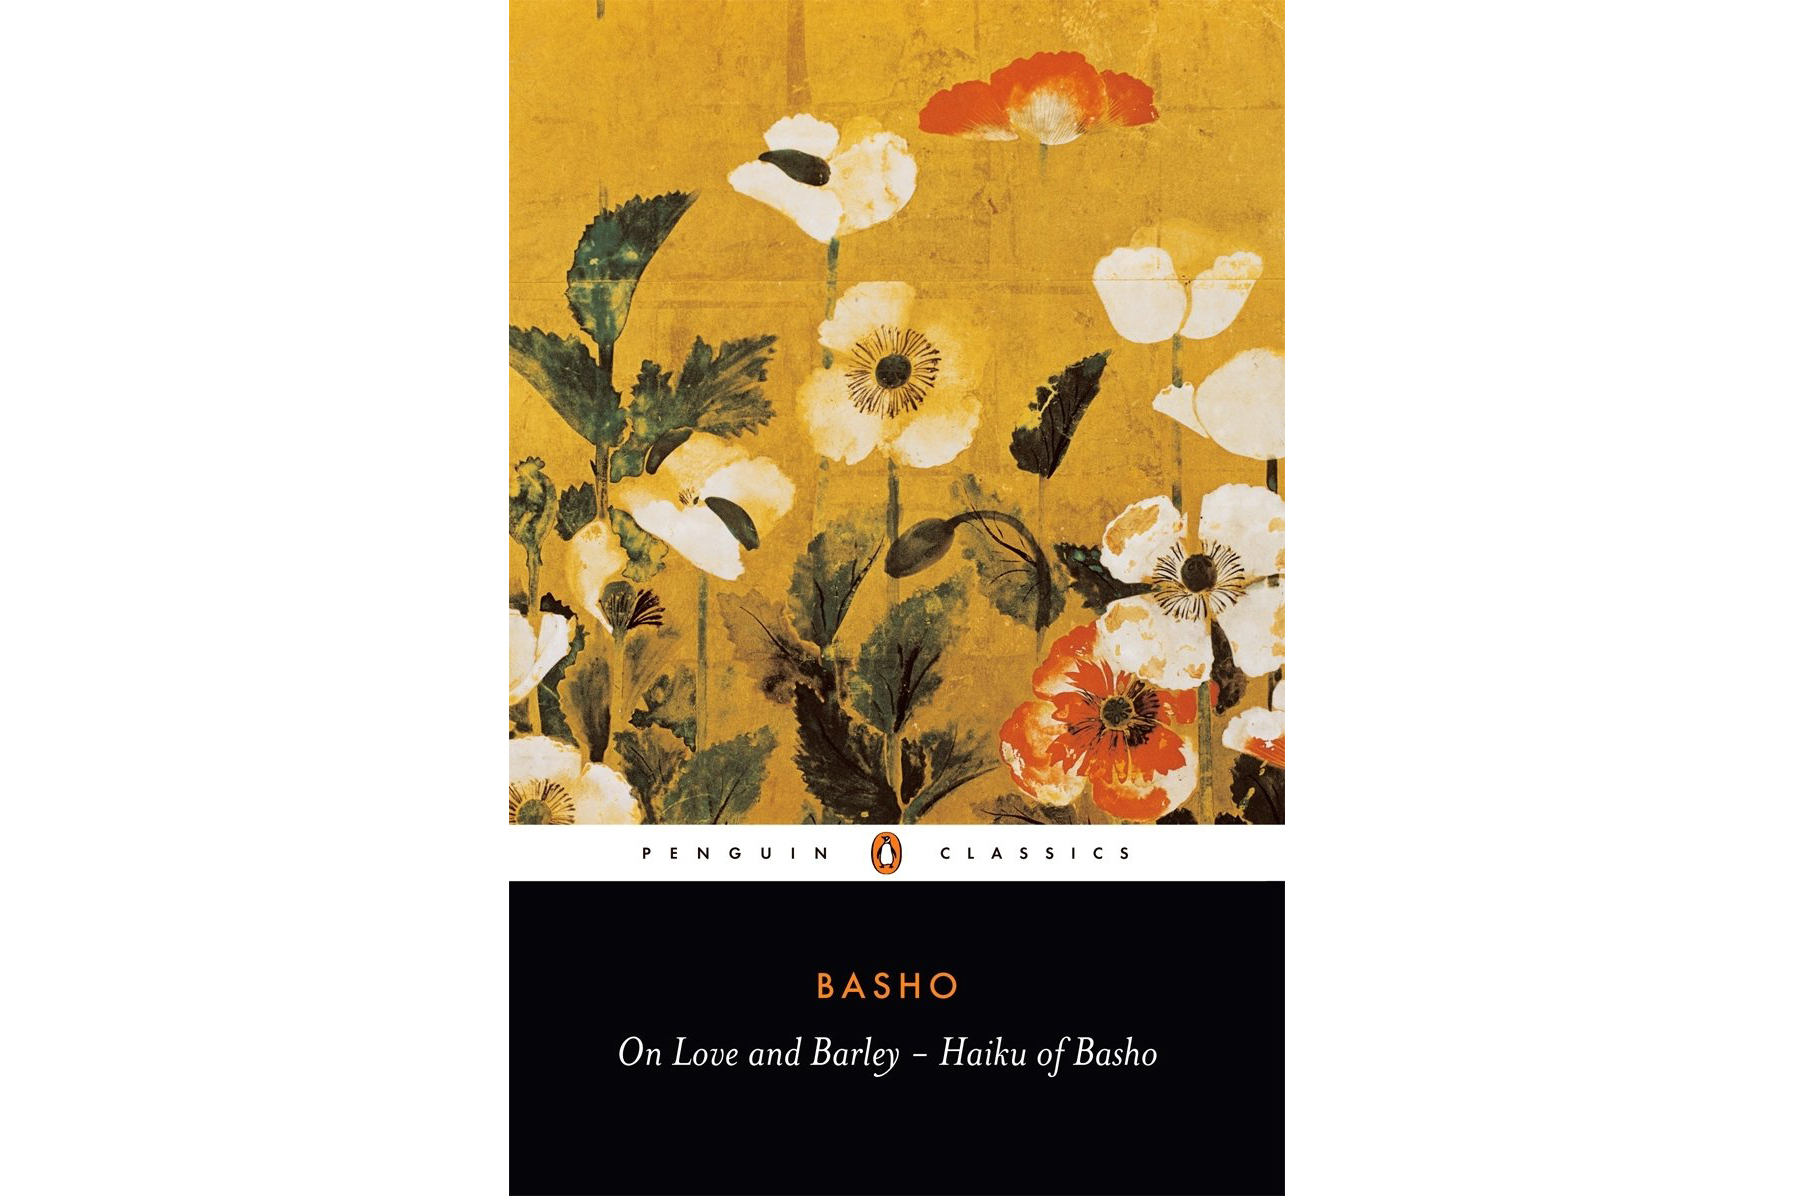 On Love and Barley, by Matsuo Bashō Cover